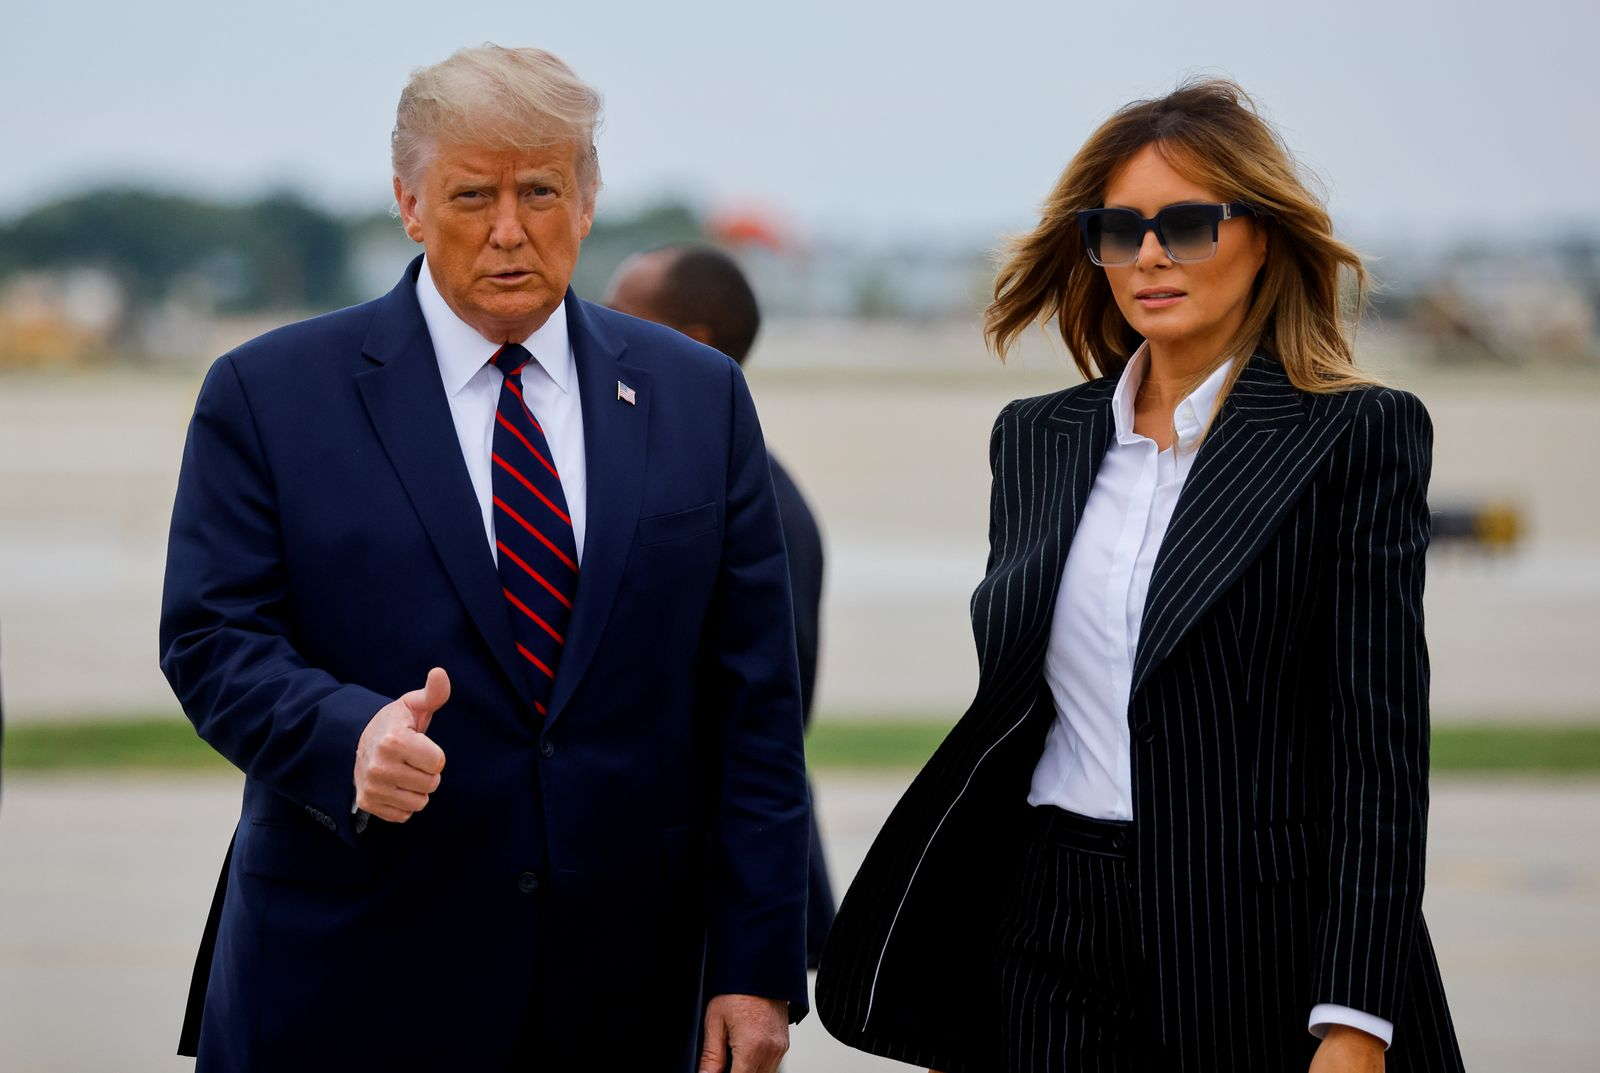 FILE PHOTO - U.S. President Donald Trump walks with first lady Melania Trump at Cleveland Hopkins International Airport in Cleveland